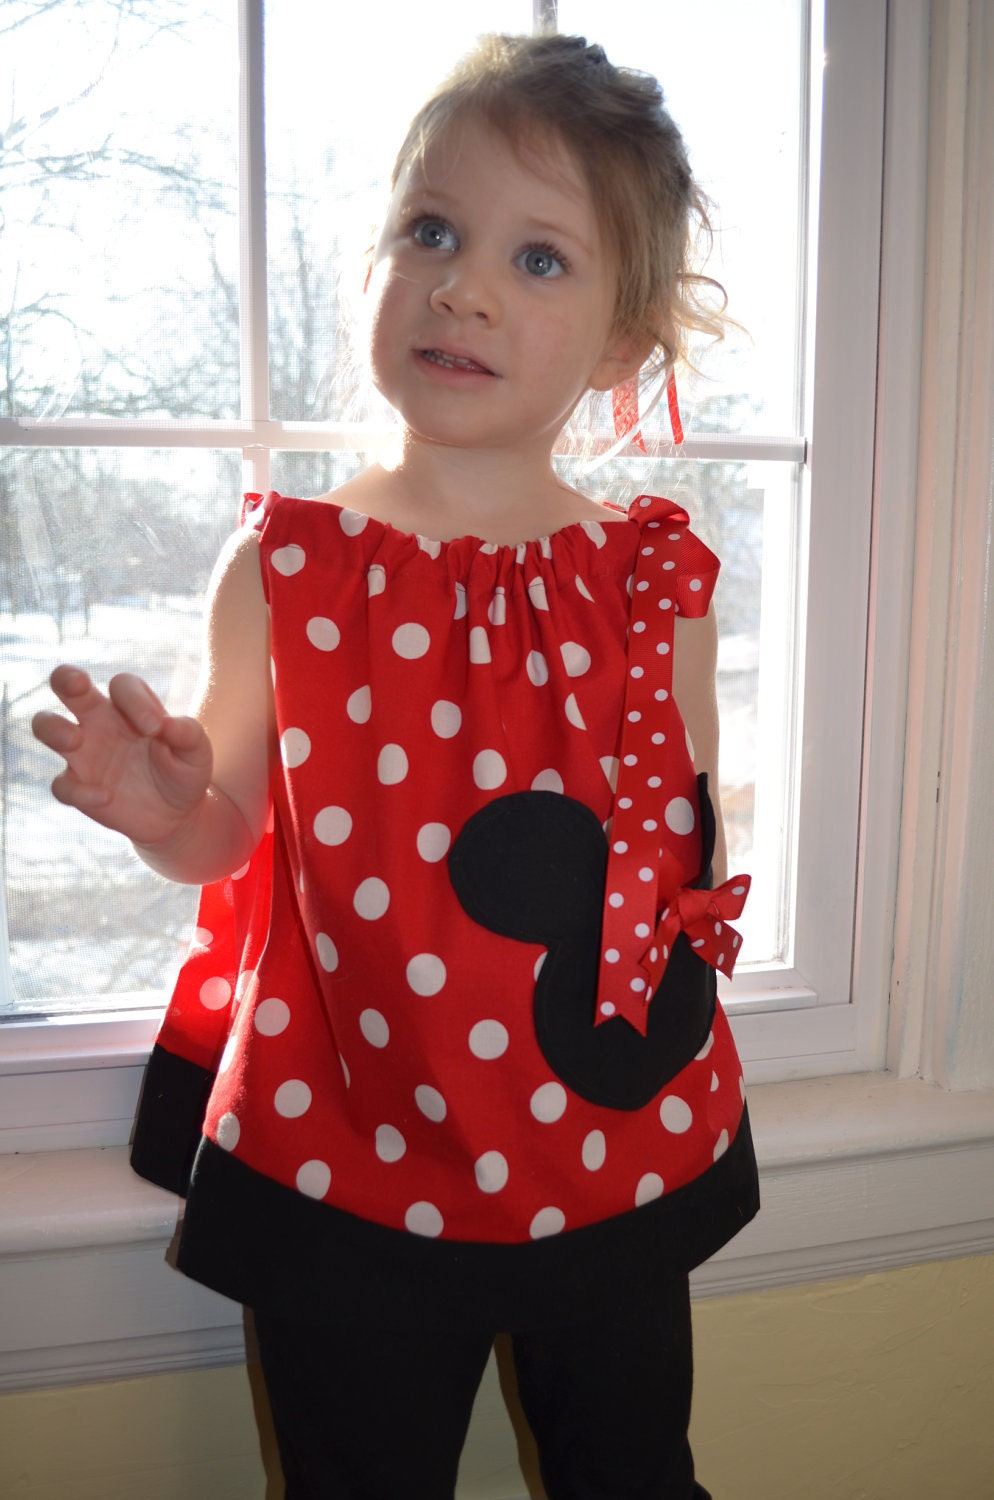 Minnie Mouse Dress Little Girl Pillowcase Dress Or Top With